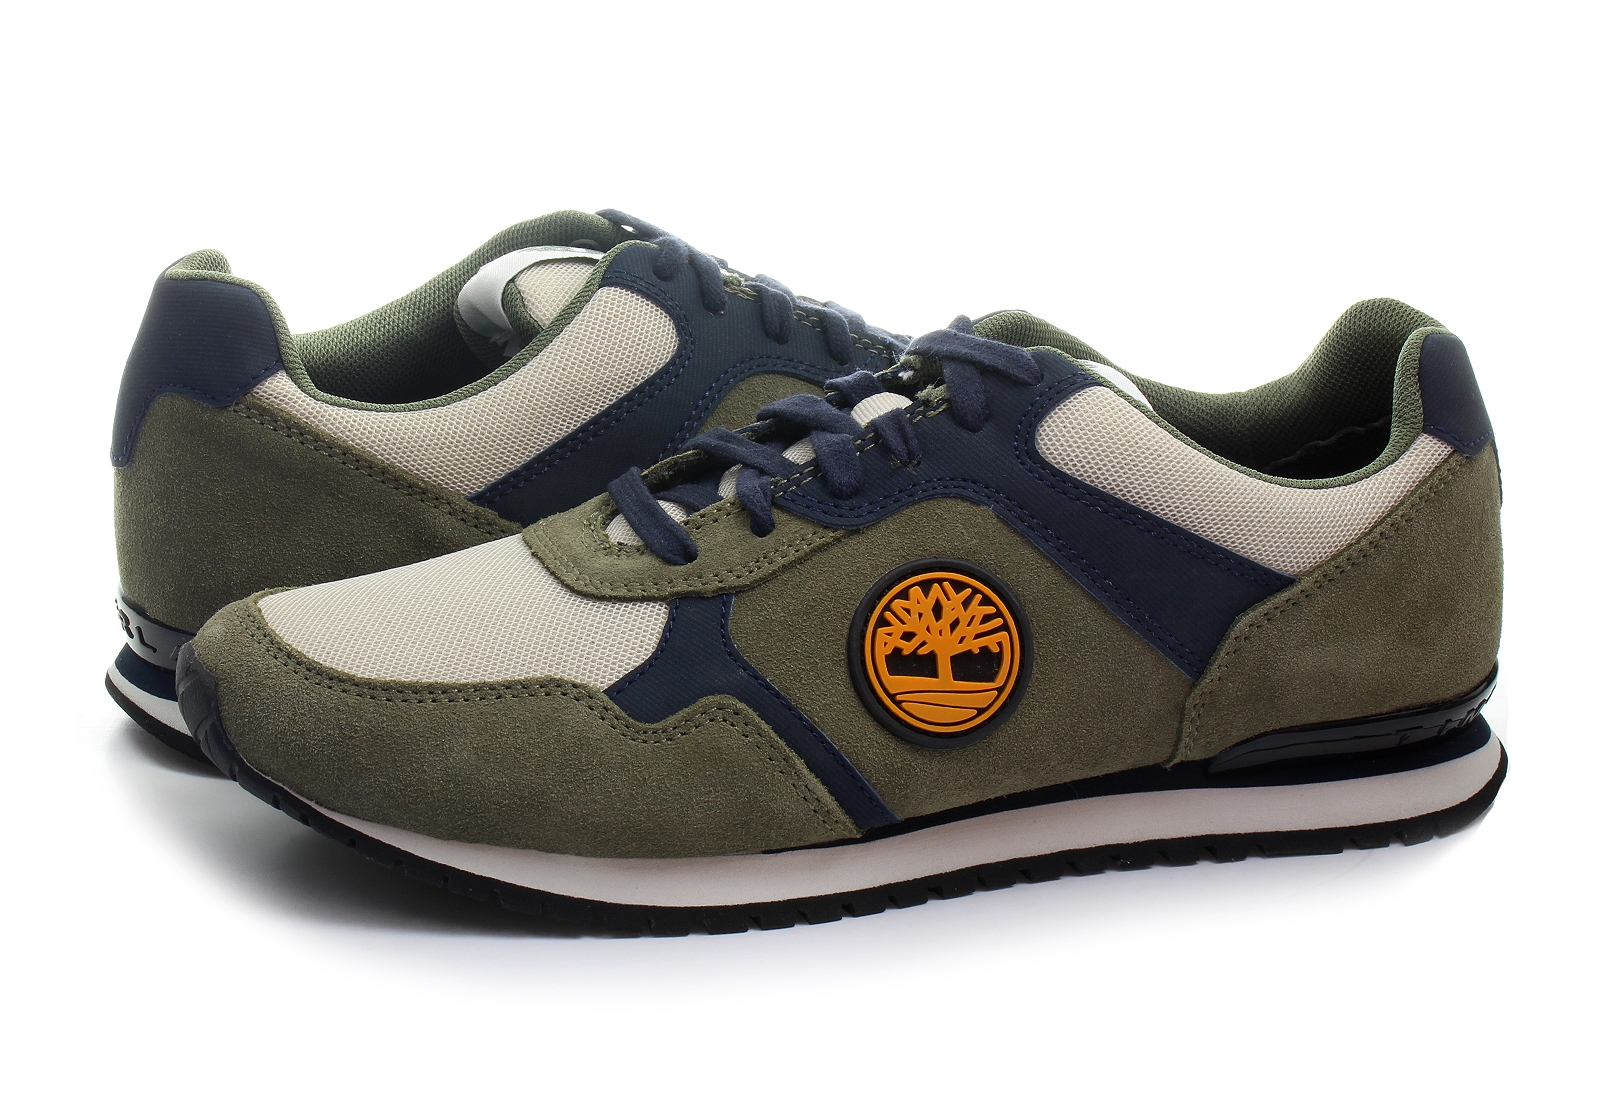 Timberland Shoes - Retro Runner - A1GKM-grn